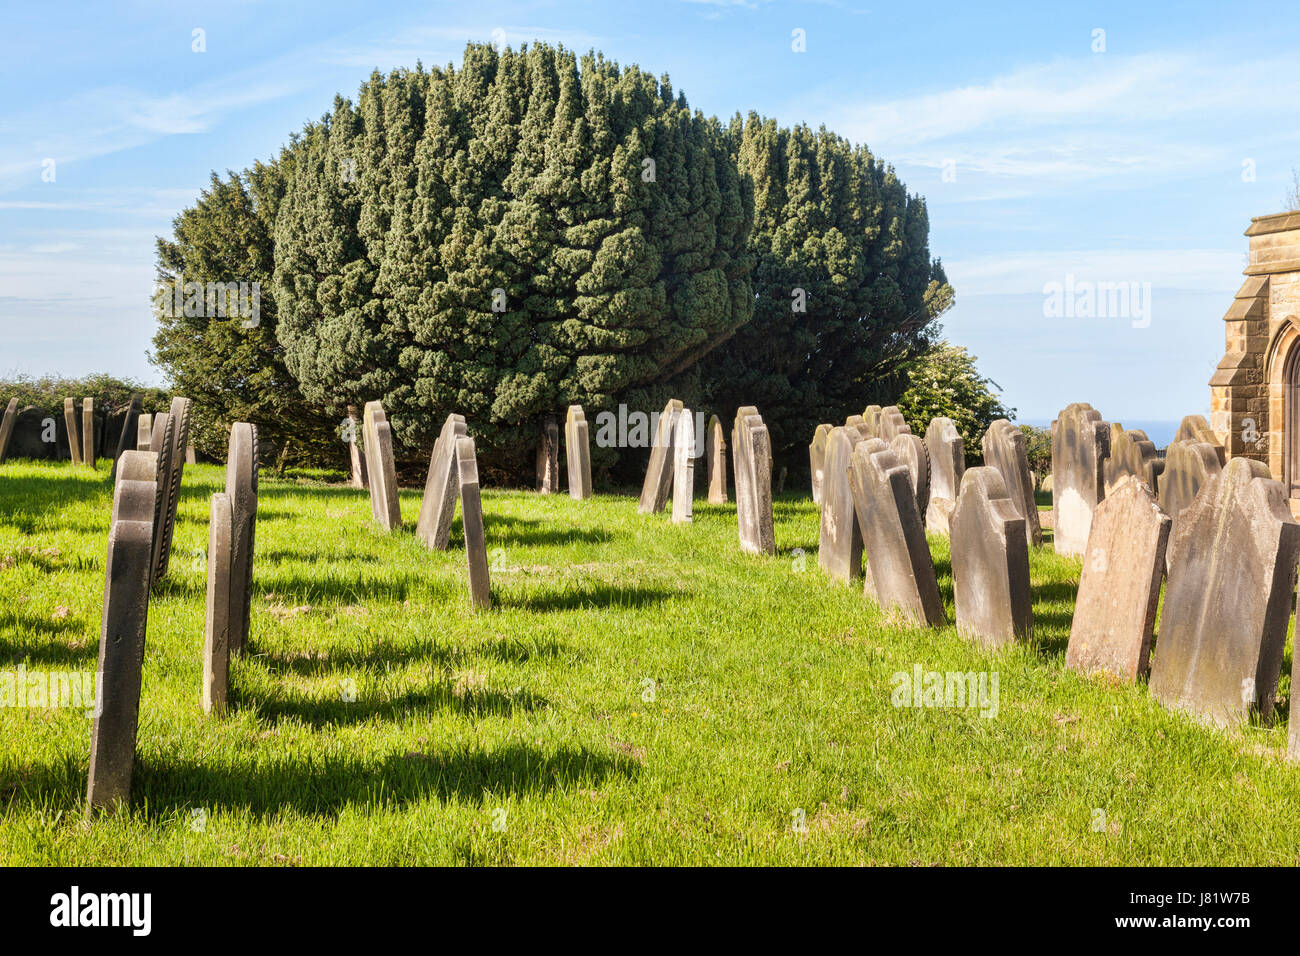 Yew tree (taxus baccata) growing in a churchyard alondgside graves, with which they have long been associated. This - Stock Image